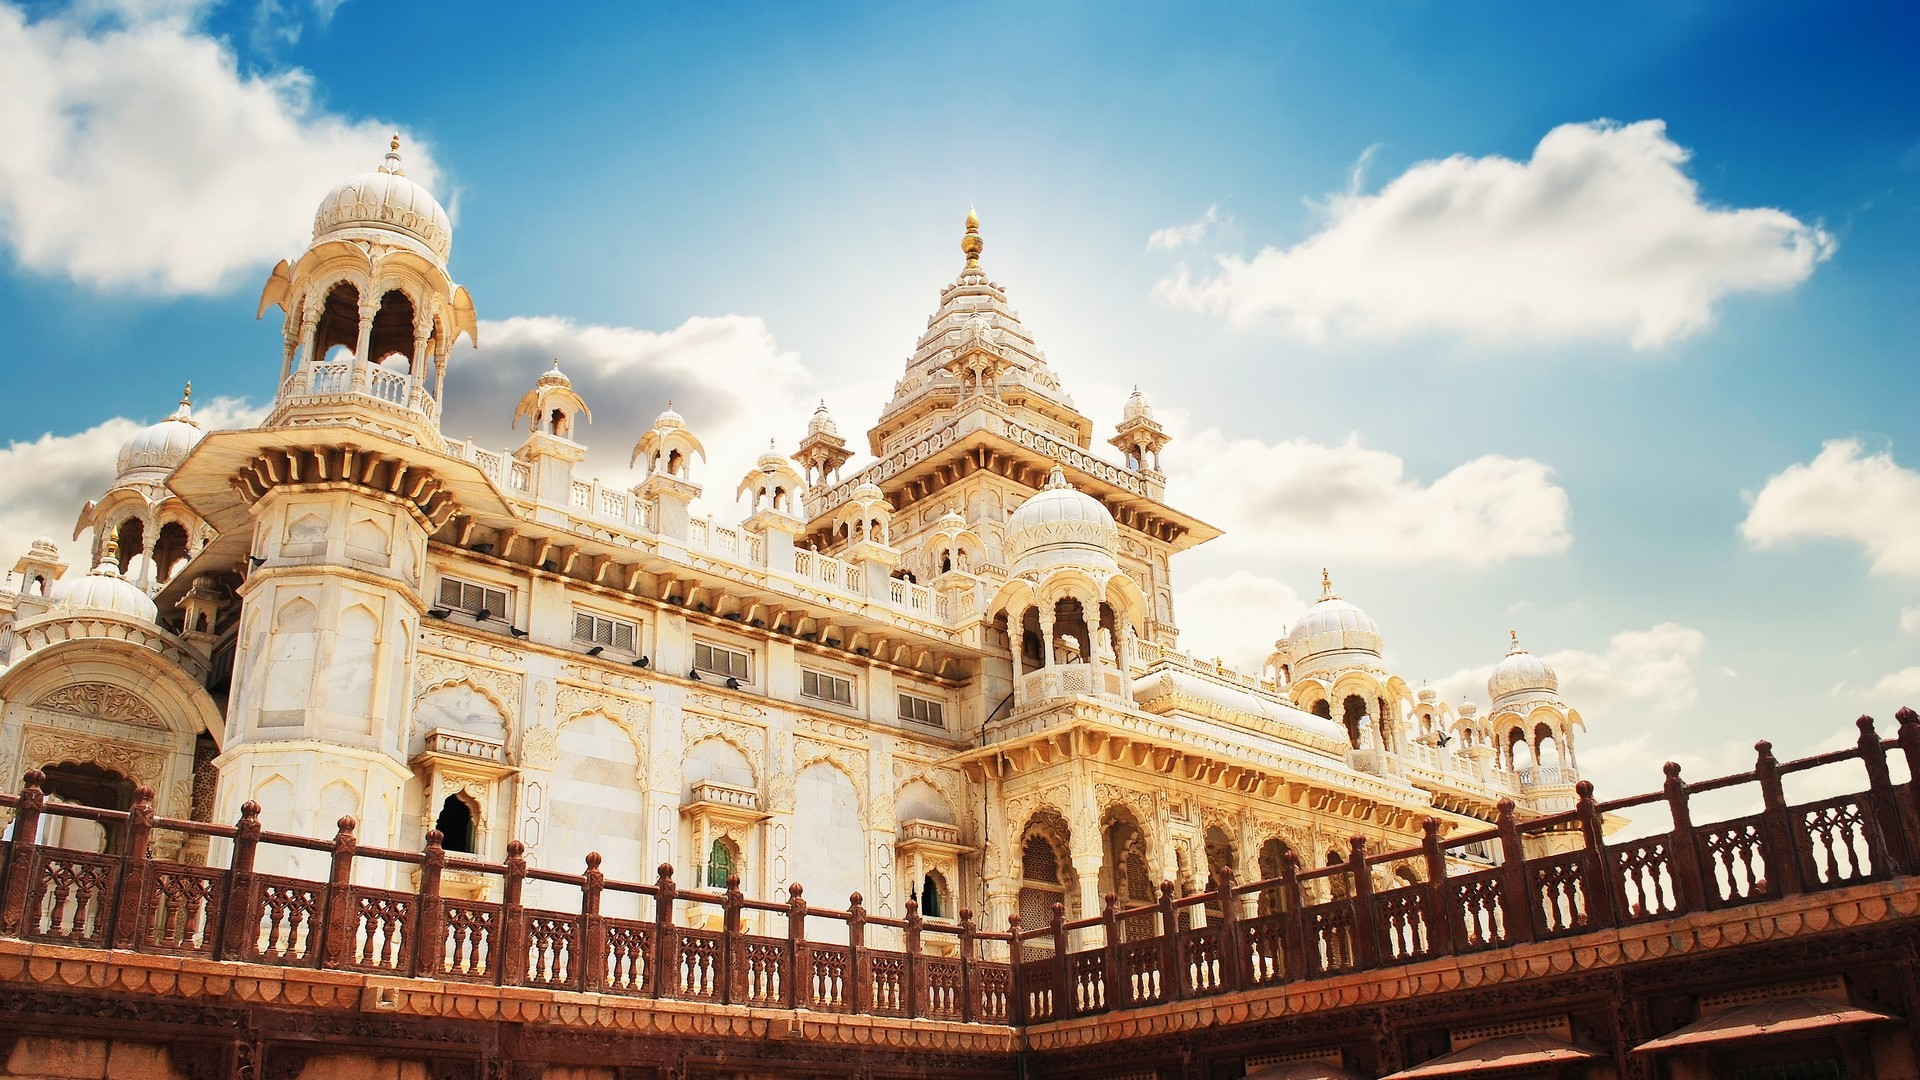 Image result for rajasthan palaces wallpaper